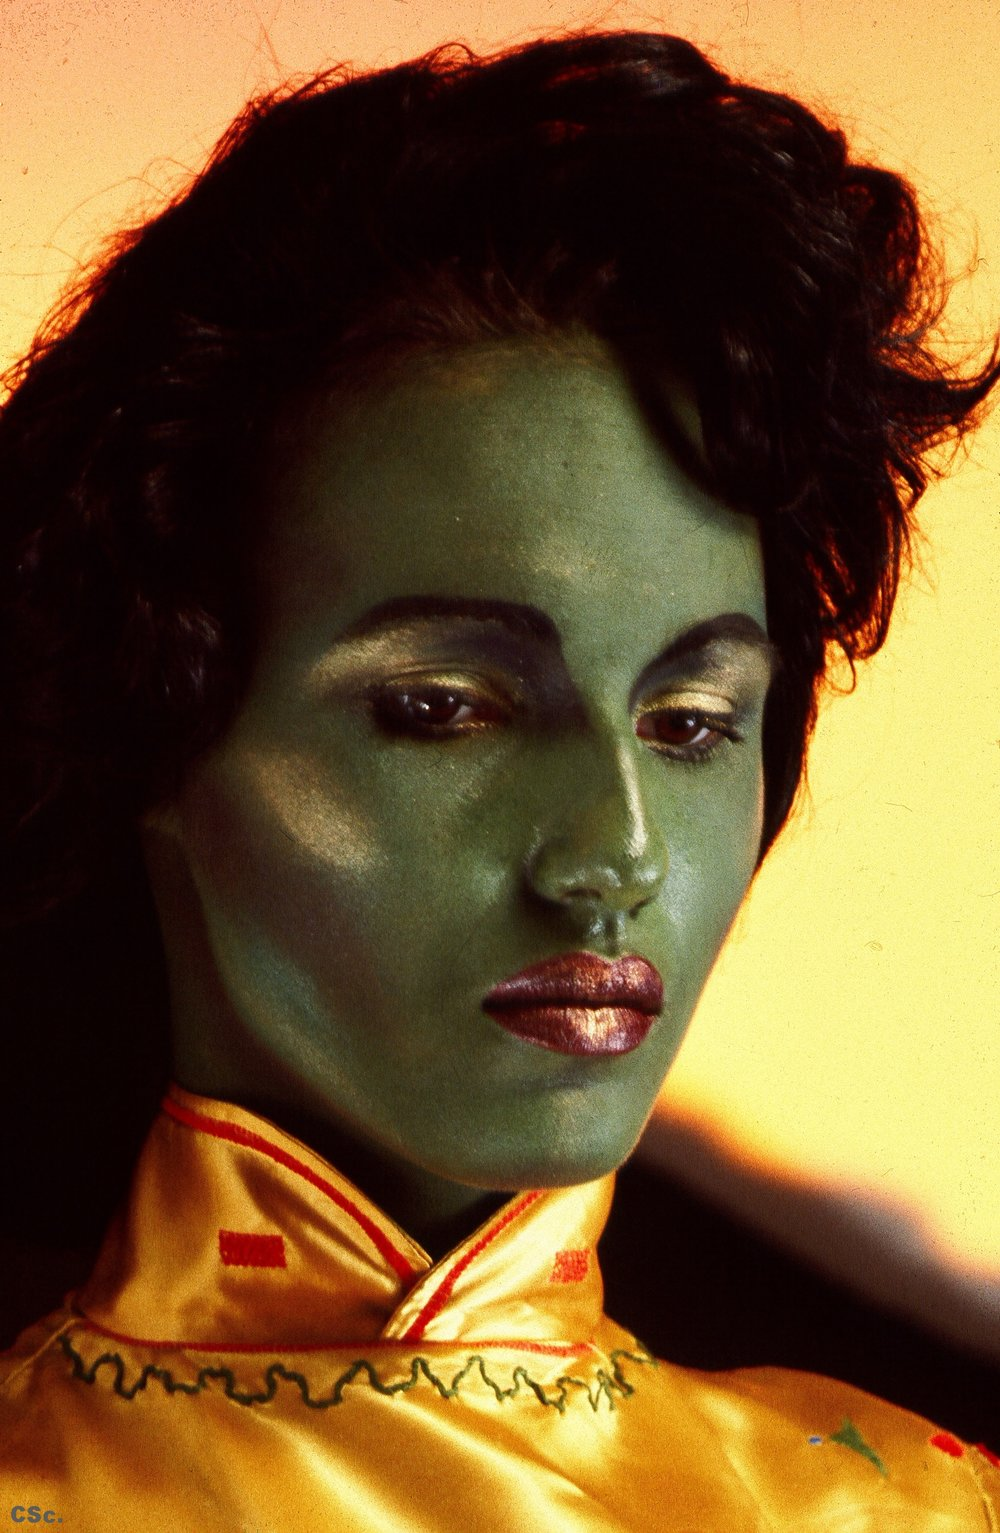 Green Amanda, 1984, photograph by Joe Lyons